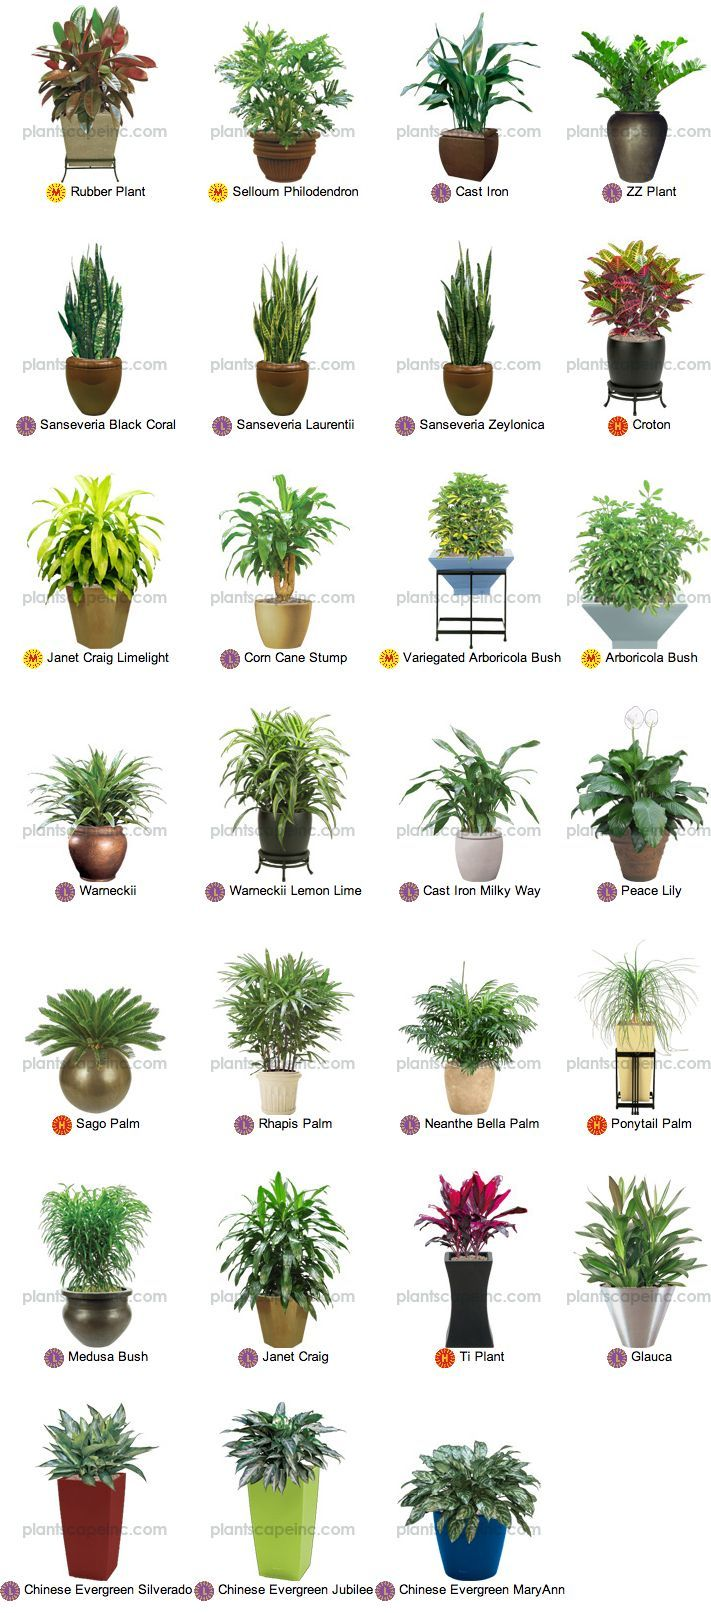 house plant umbrella tree, indoor palm plants types, like palm plants types, house with palm trees, dracaena house plant types, house plants that look like trees, lady palm tree types, house plant schefflera actinophylla, indoor ponytail palm tree types, small indoor palm tree types, identify tree types, house plants palms identify, house plants at lowe's, house plant rubber tree, south florida palm tree types, double trunk palm tree types, home plants types, house plant banana tree, palm names types, on types of tree palm house plant list